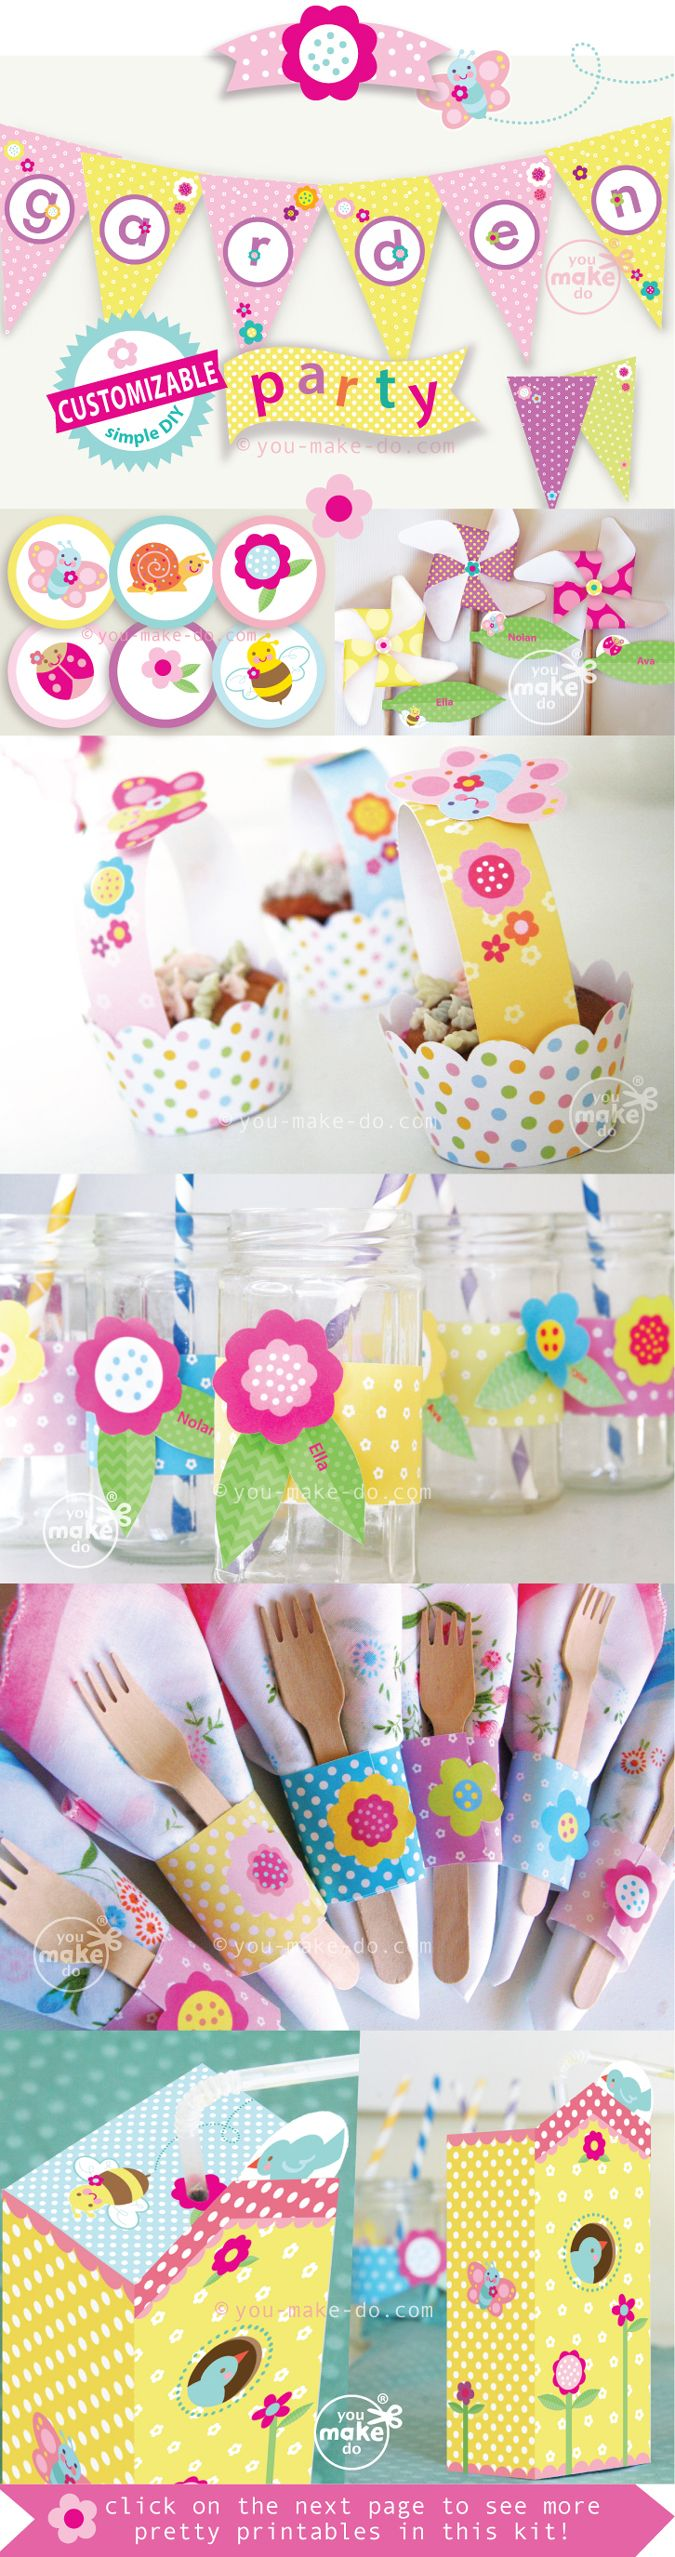 Make Garden Party Printables For A Birthday Or Baby Shower